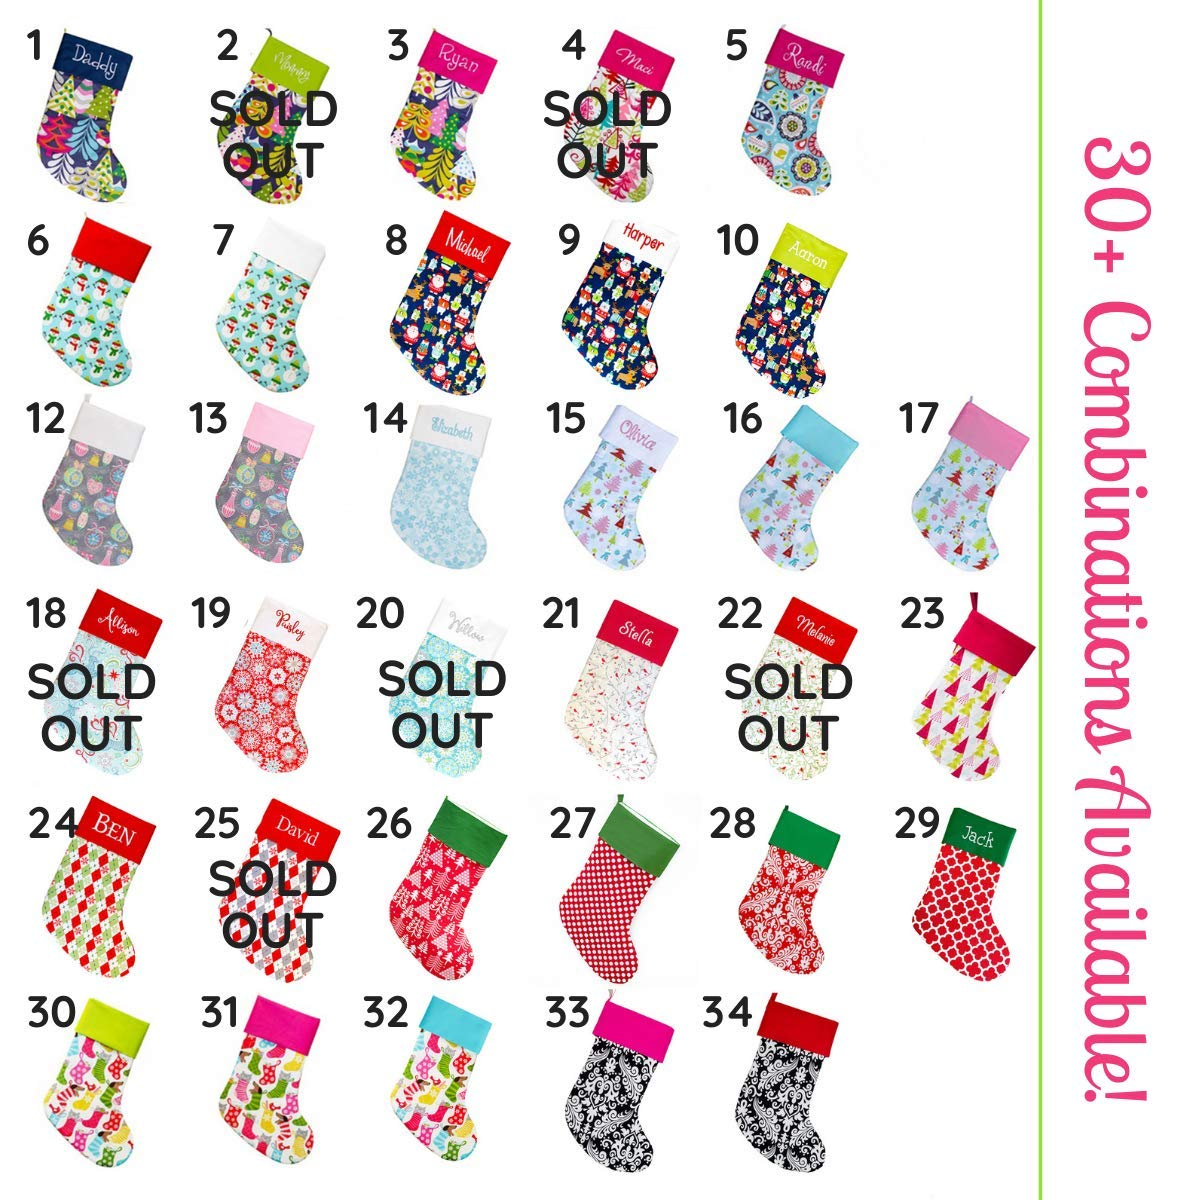 Personalized Family Christmas Stockings 18 Large Choose Your Own Custom Fabric